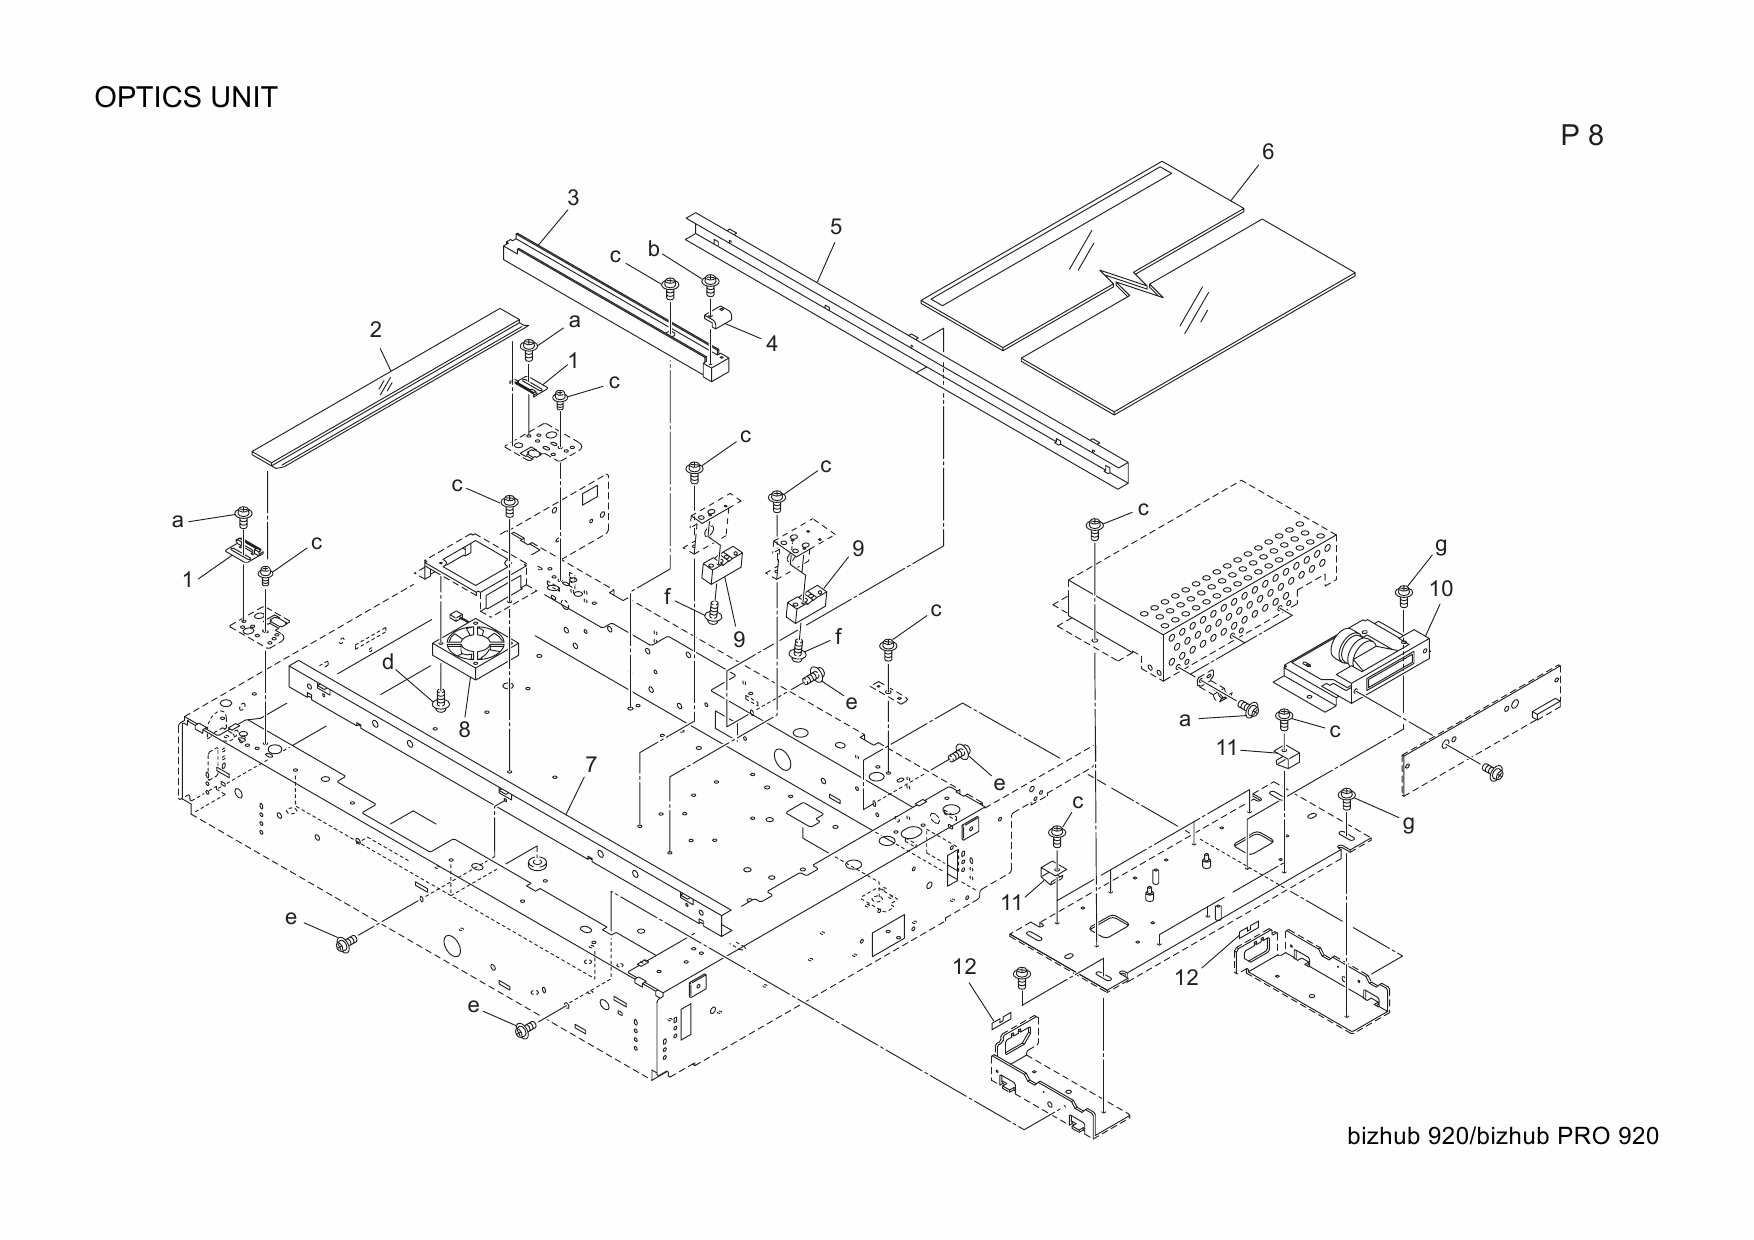 Konica-Minolta bizhub-PRO 920 Parts Manual-4